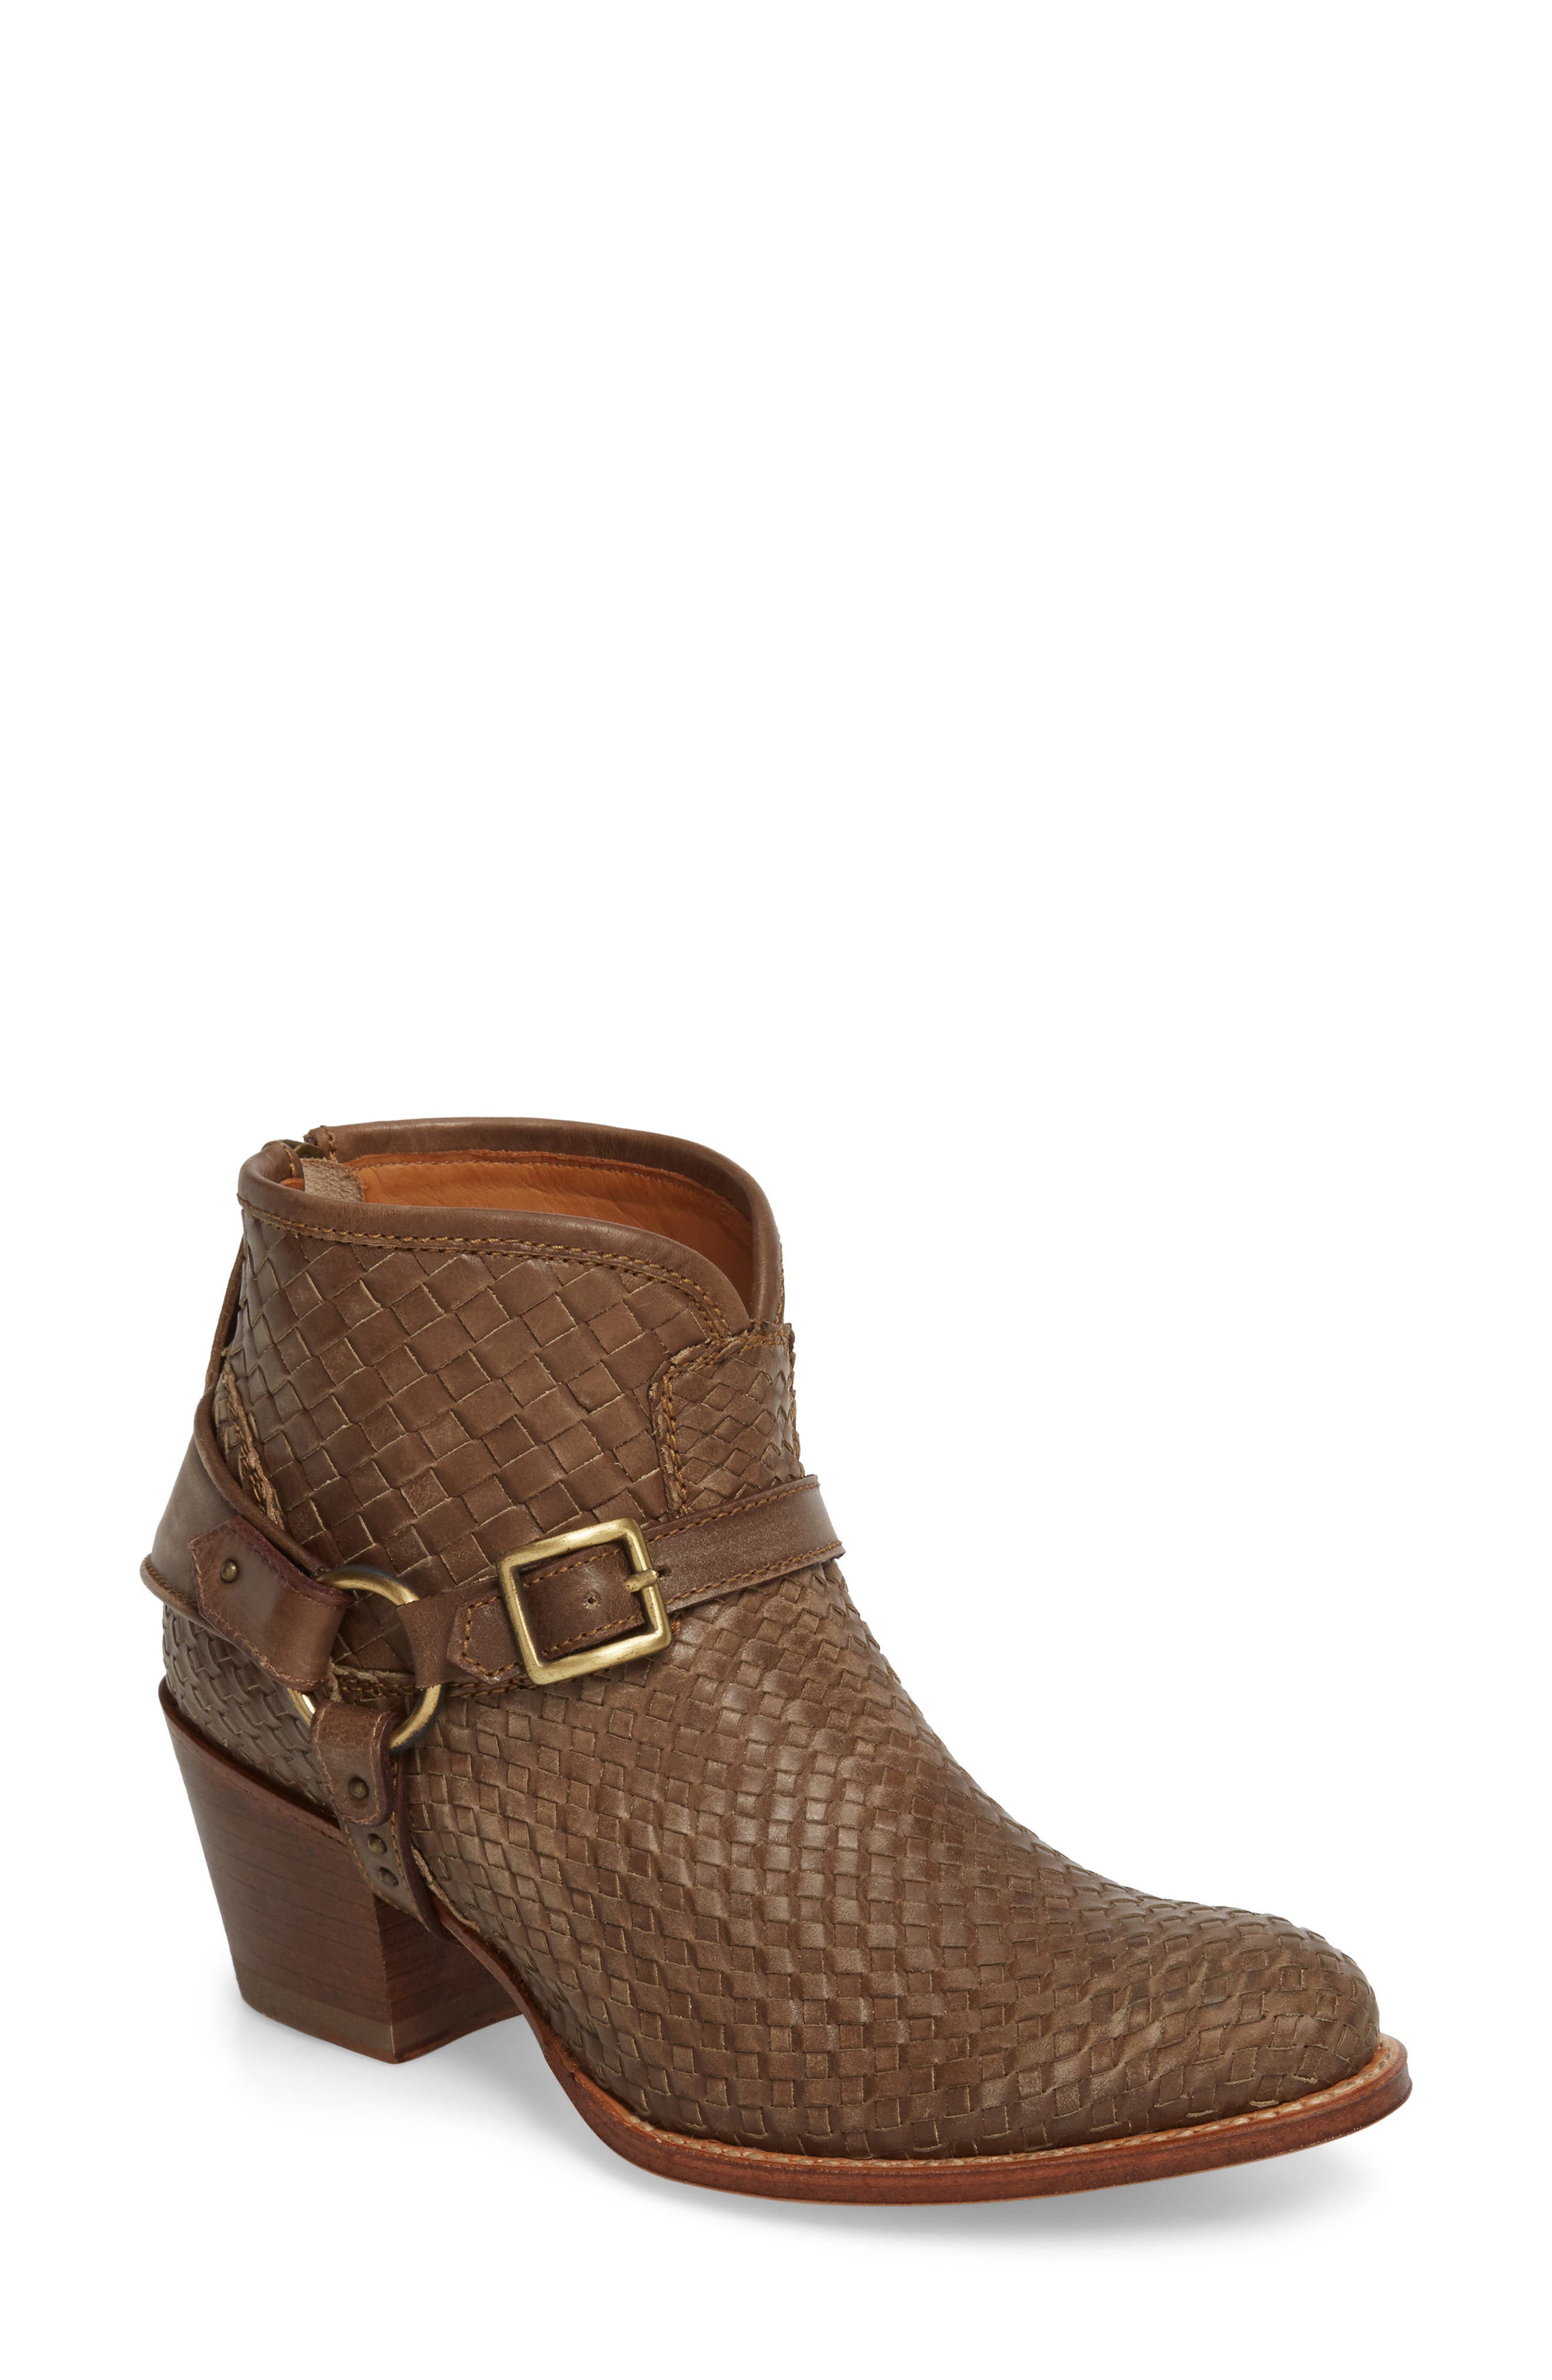 Two24 by Ariat Sollana Bootie,                         Main,                         color, 200